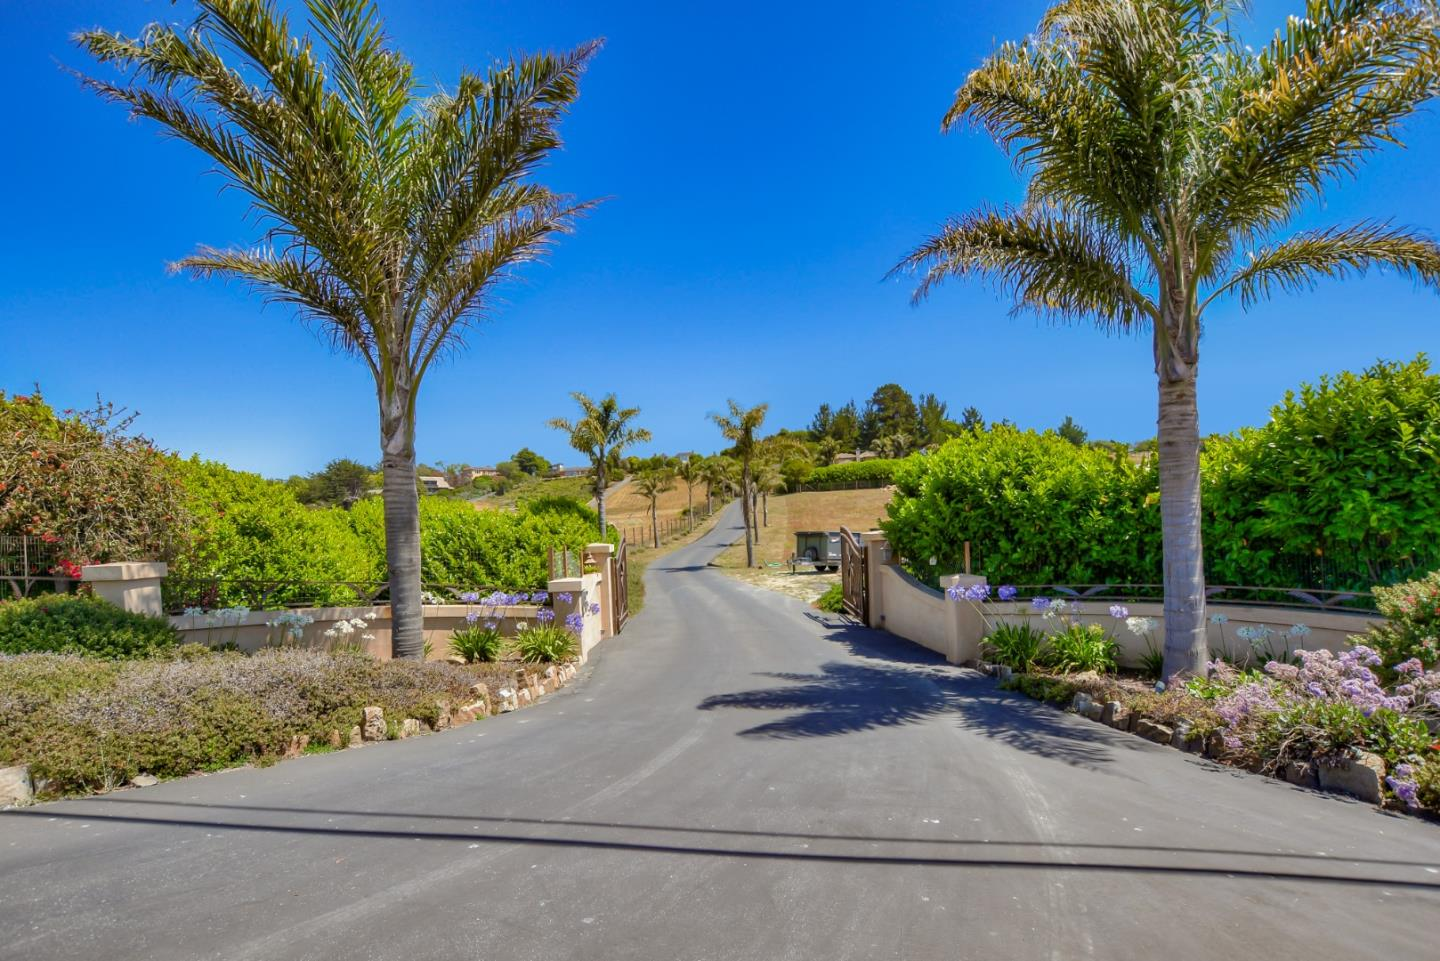 Stunning ocean view Mediterranean on 2.5 plus sunny, gated acres.   When you enter the property from a quiet country lane that borders nearby Manresa Beach state park you are immediately in touch with the natural environment and the views of the surrounding countryside and Monterey Bay beyond.  The custom home was originally built by the contractor-owner as his own residence and has many custom features including radiant heat, exterior stucco and tile roof with copper gutters and downspouts. The home features an open kitchen-living area, two Master suites, one with ocean view, private ocean view patios and large three car garage.   Zoned for a large second guest unit and perfect for small vineyard/or?   Beautiful as is and even more upside potential.  Great opportunity!